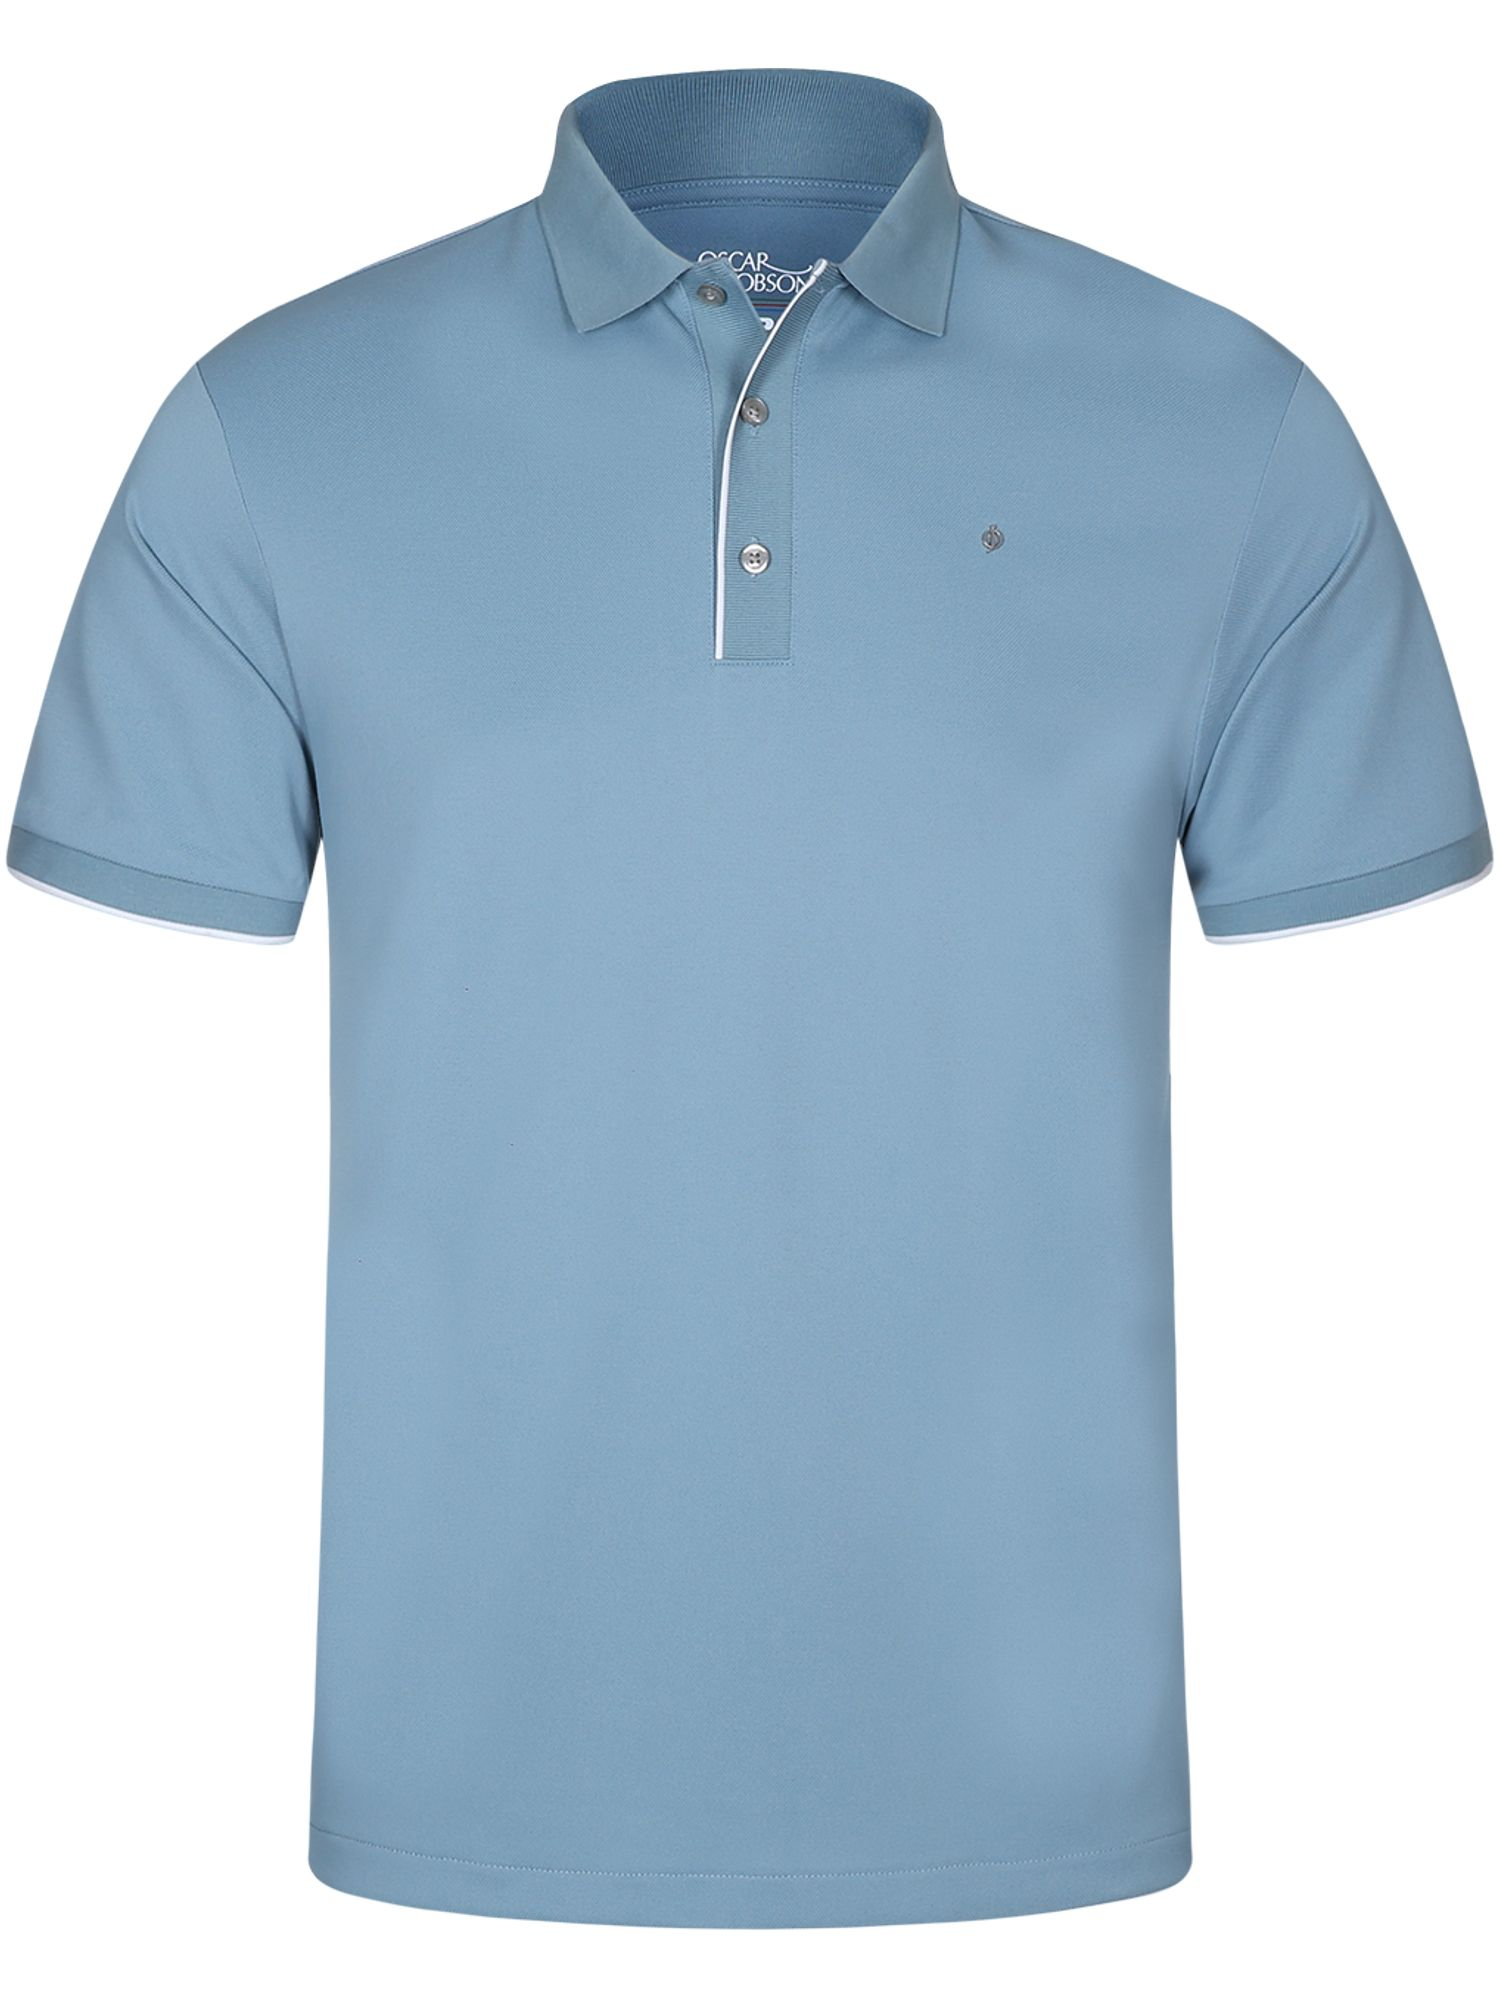 Men's Oscar Jacobson Ivo Pin Polo, Blue